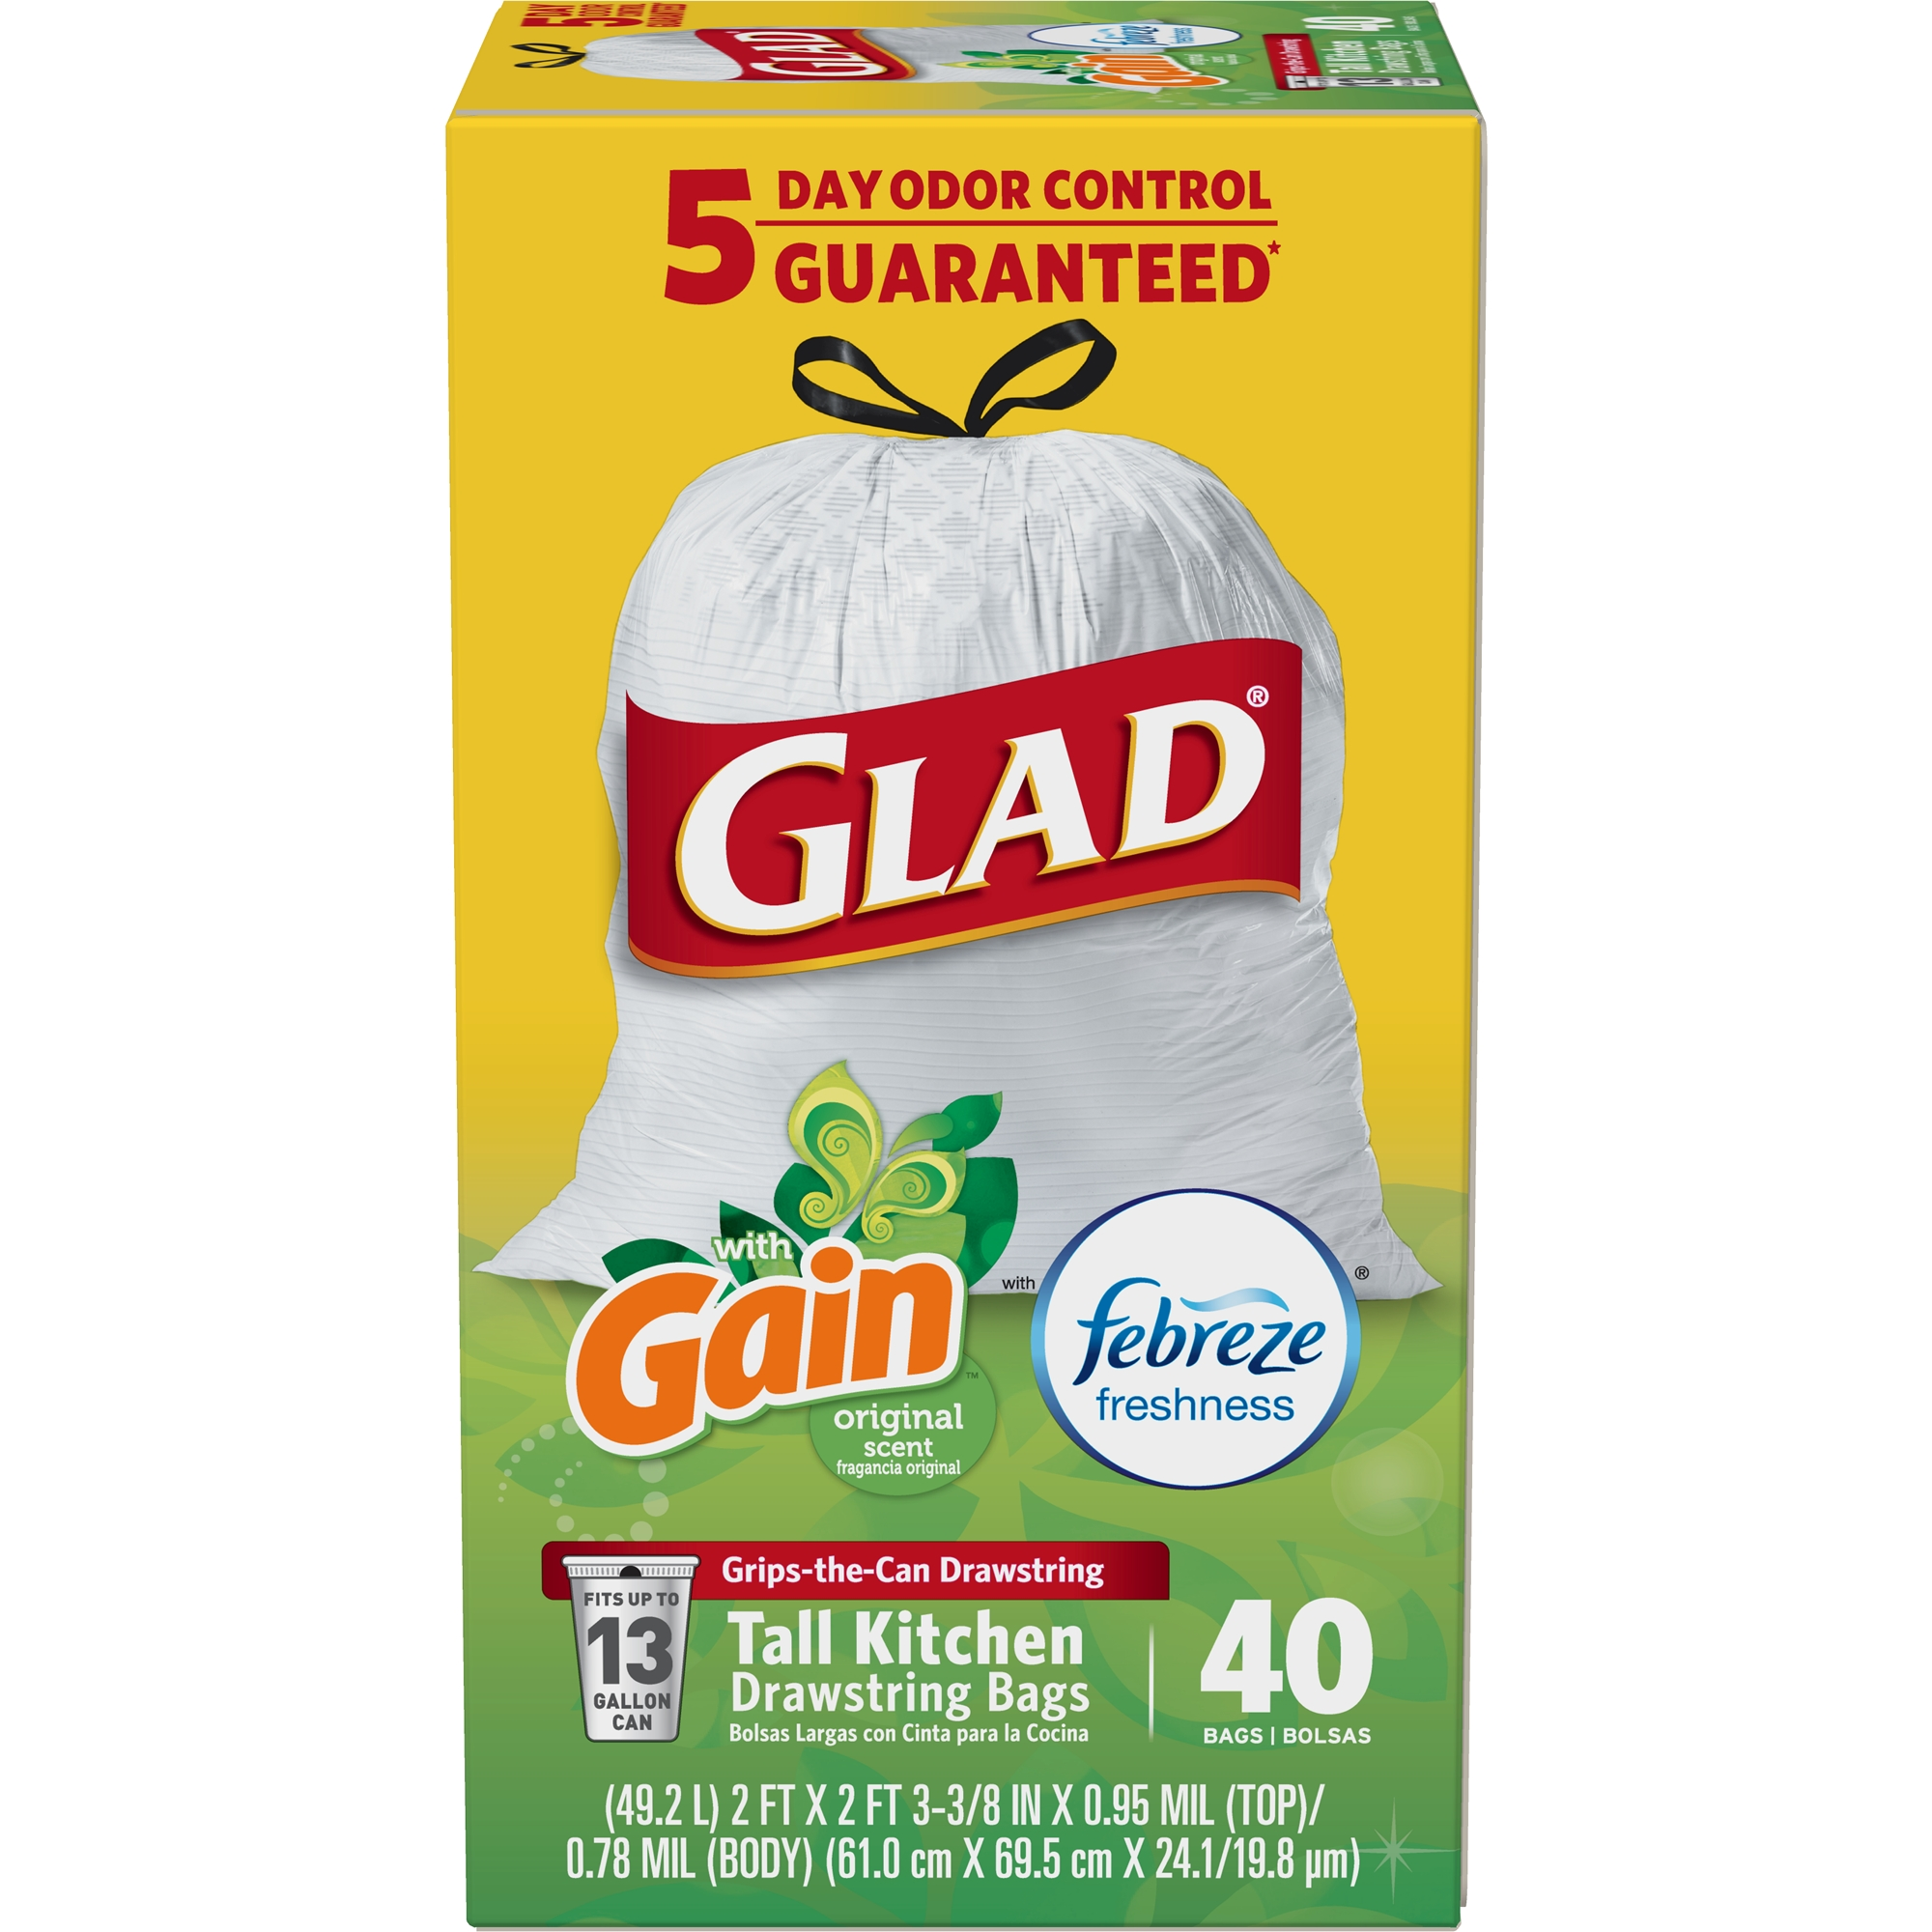 Glad OdorShield Tall Kitchen Drawstring Trash Bags - Gain Original with Febreze Freshness - 13 Gallon - 40 ct (Packaging May Vary)